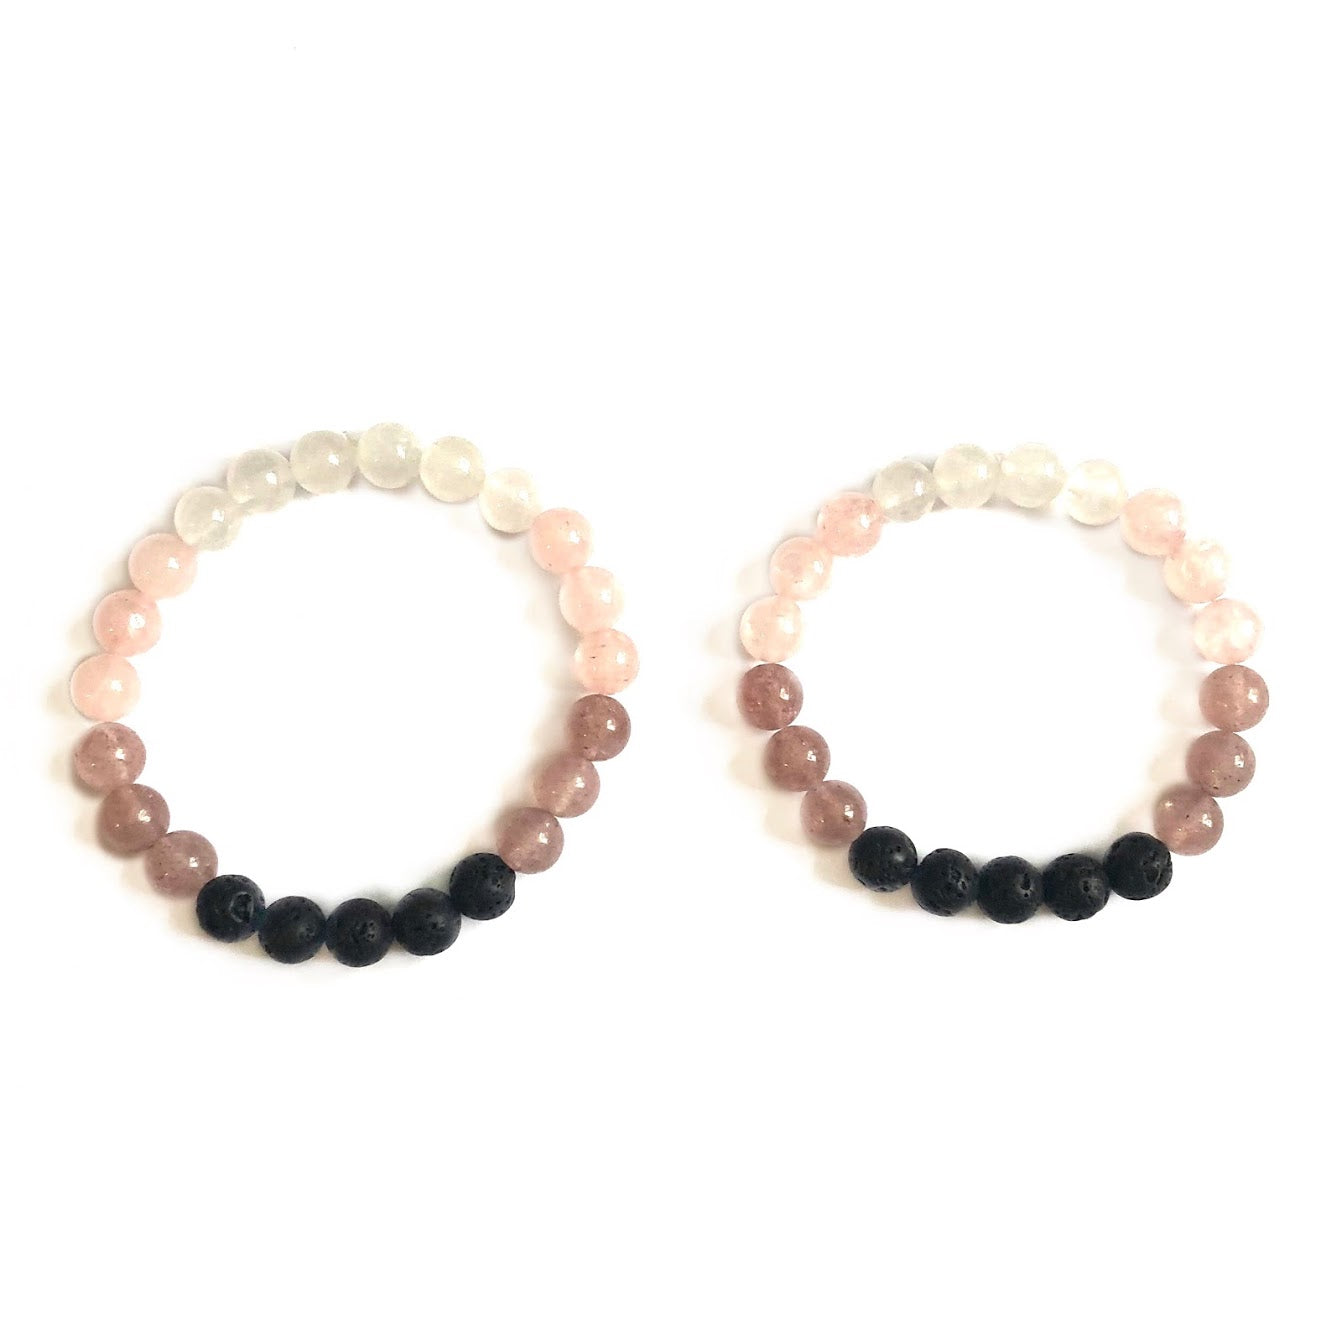 The Pinks Lava Bracelet